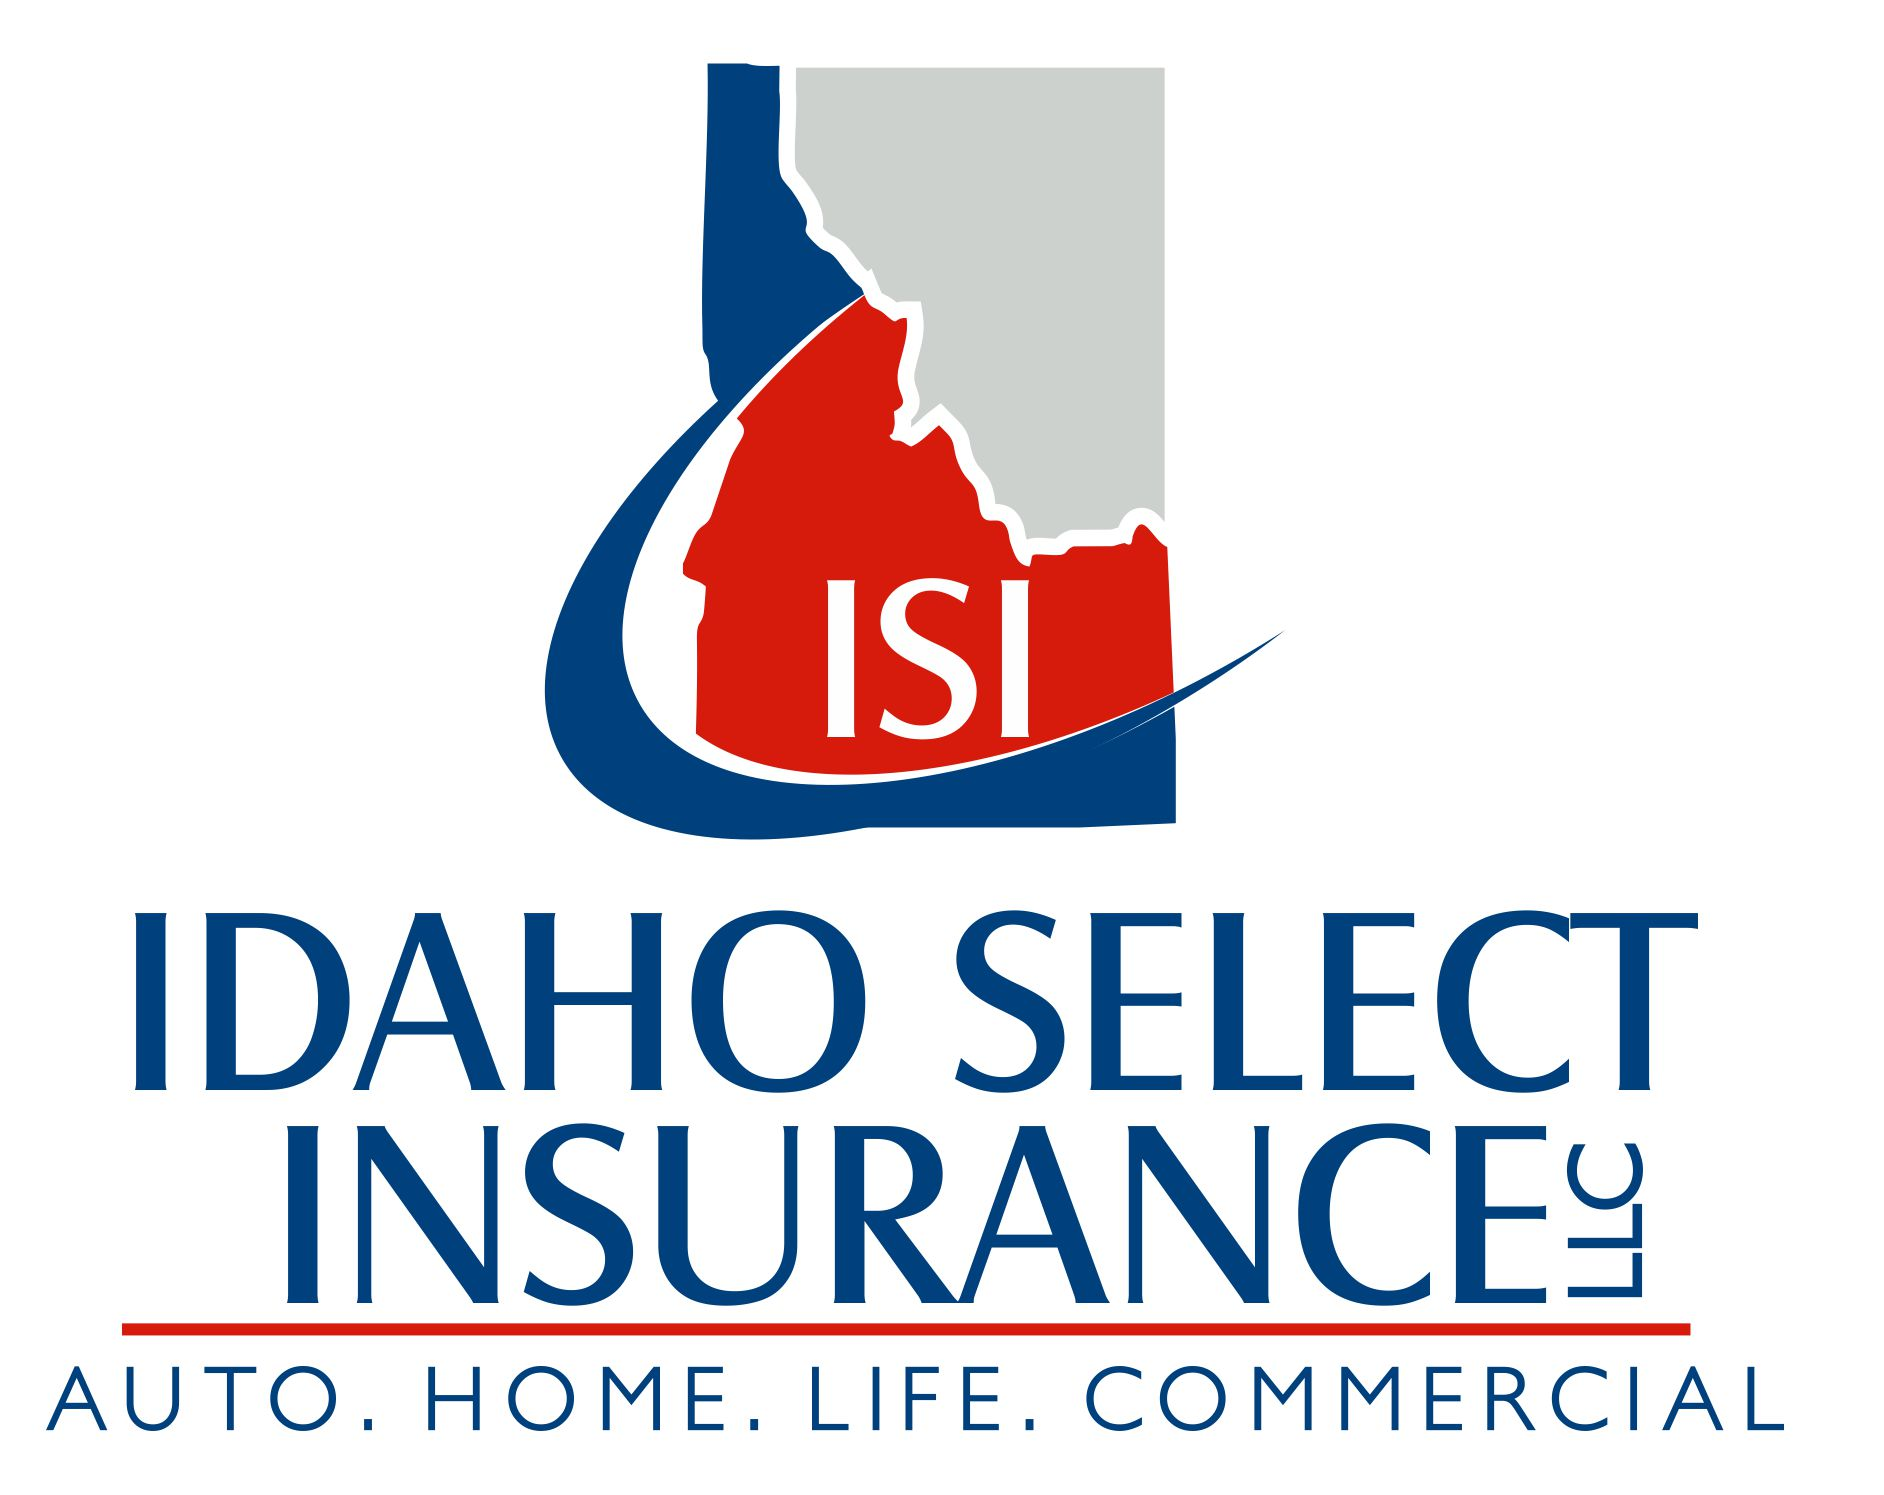 Select Quotes Life Insurance Meridian Id Insurance Agents  Idaho Select Insurance  Idaho